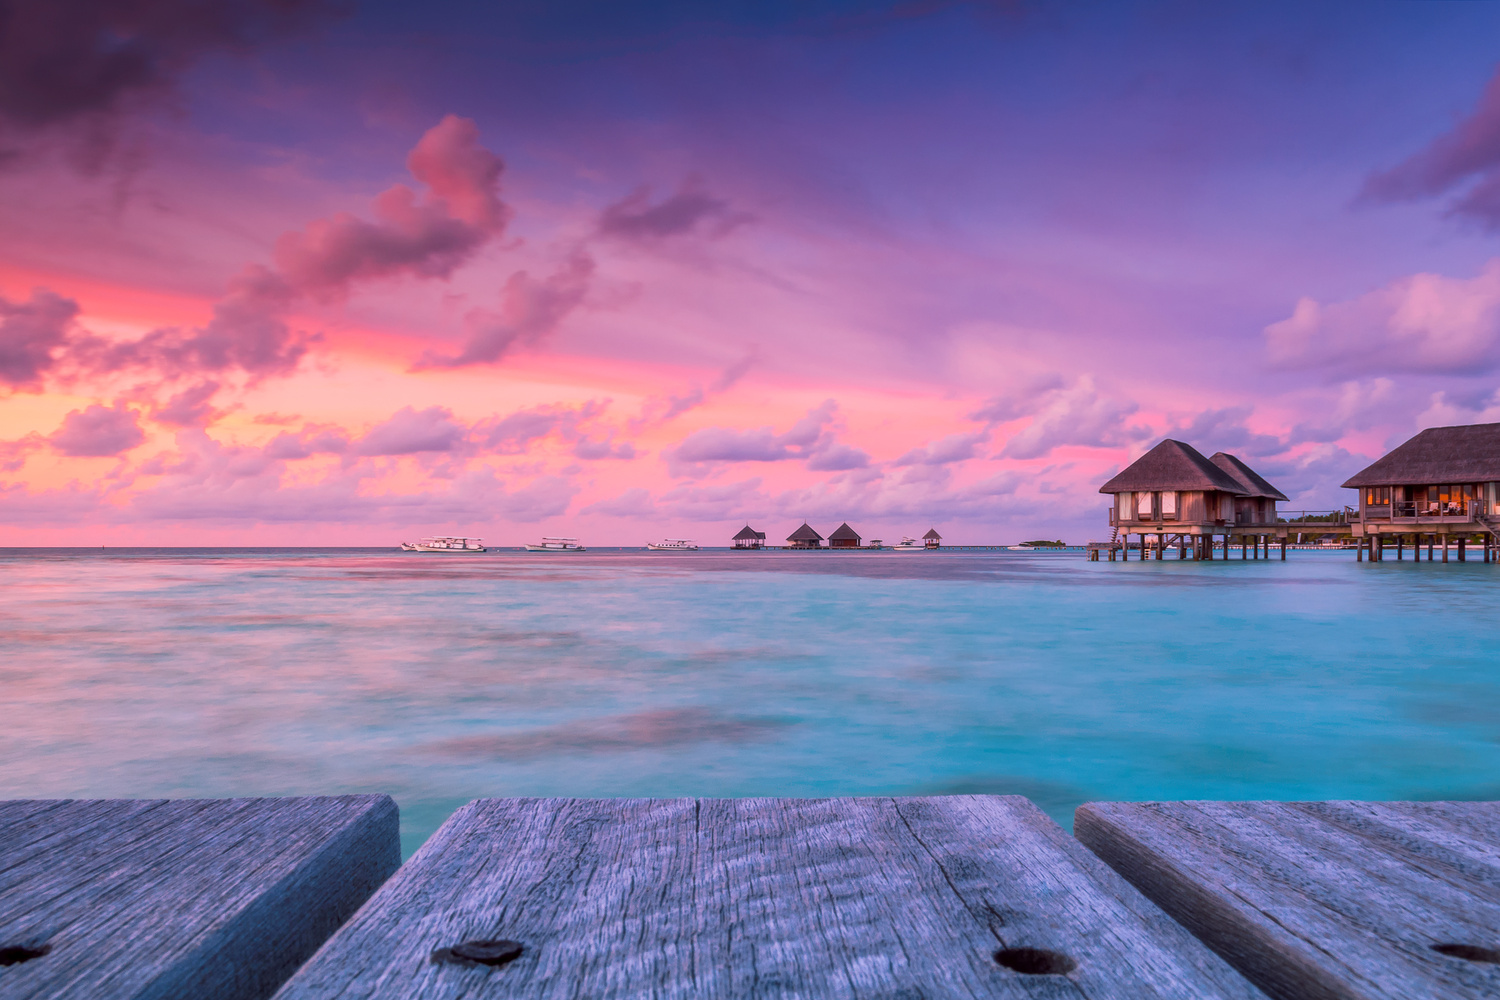 Wonderful twilight time at tropical beach resort in Maldives by Salawin Chanthapan